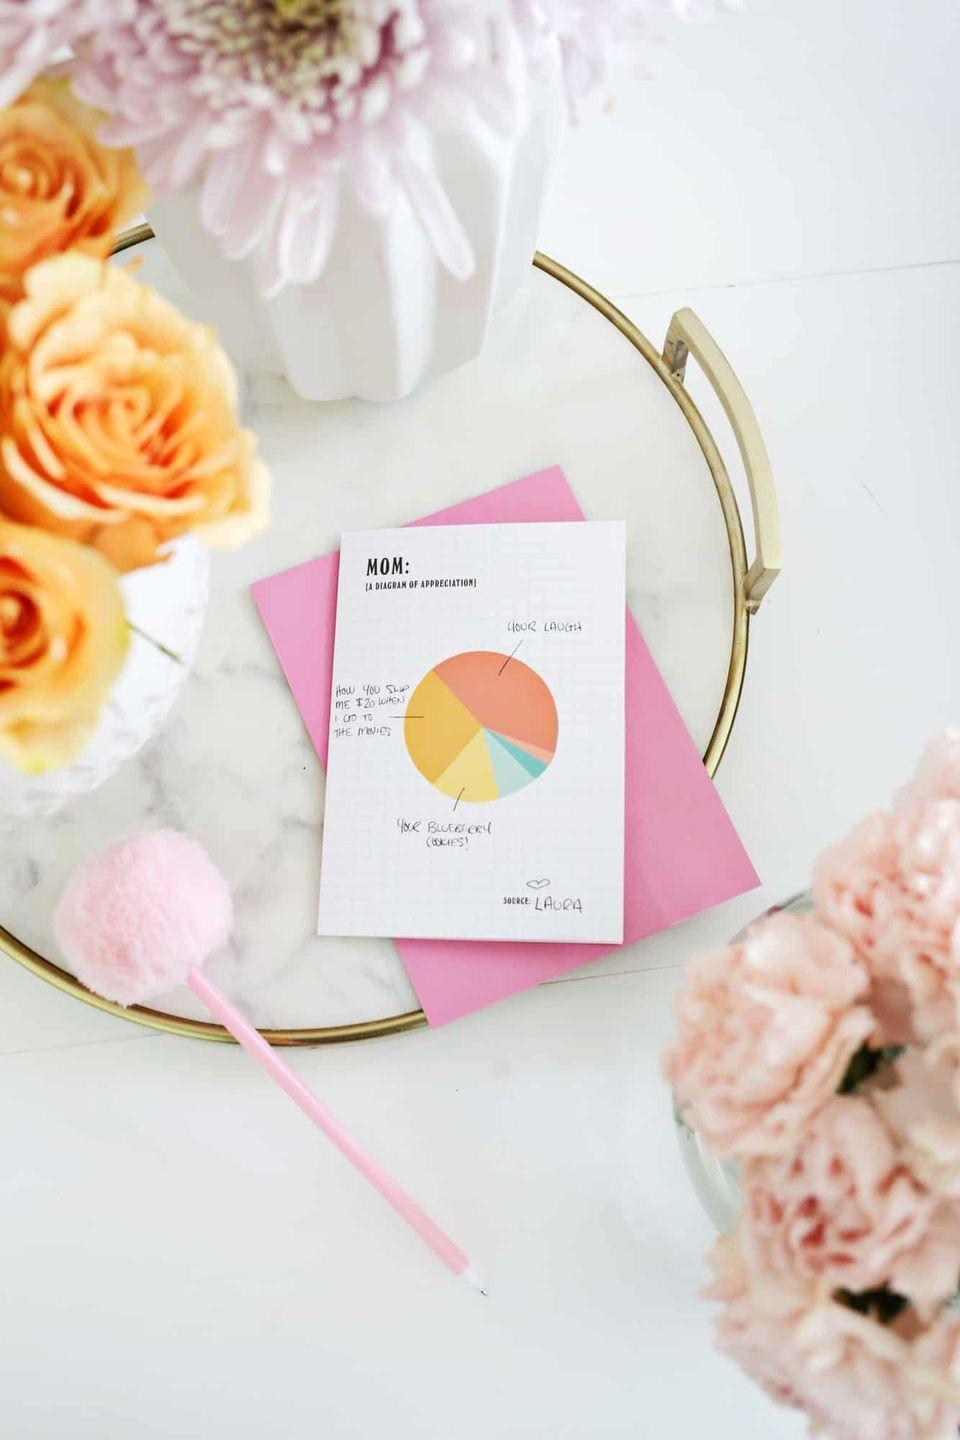 """<p>Take time this Mother's Day to tell your mom exactly what it is that you appreciate about her. This cute diagram card will help you get the job done.</p><p><strong>Get the printable at <a href=""""https://abeautifulmess.com/mothers-day-card-printables-theyre-free/"""" rel=""""nofollow noopener"""" target=""""_blank"""" data-ylk=""""slk:A Beautiful Mess"""" class=""""link rapid-noclick-resp"""">A Beautiful Mess</a>. </strong></p><p><a class=""""link rapid-noclick-resp"""" href=""""https://www.amazon.com/Springhill-Cardstock-199gsm-Bright-Sheets/dp/B009ZMY1I6?tag=syn-yahoo-20&ascsubtag=%5Bartid%7C2164.g.35668391%5Bsrc%7Cyahoo-us"""" rel=""""nofollow noopener"""" target=""""_blank"""" data-ylk=""""slk:SHOP CARD STOCK"""">SHOP CARD STOCK</a></p>"""